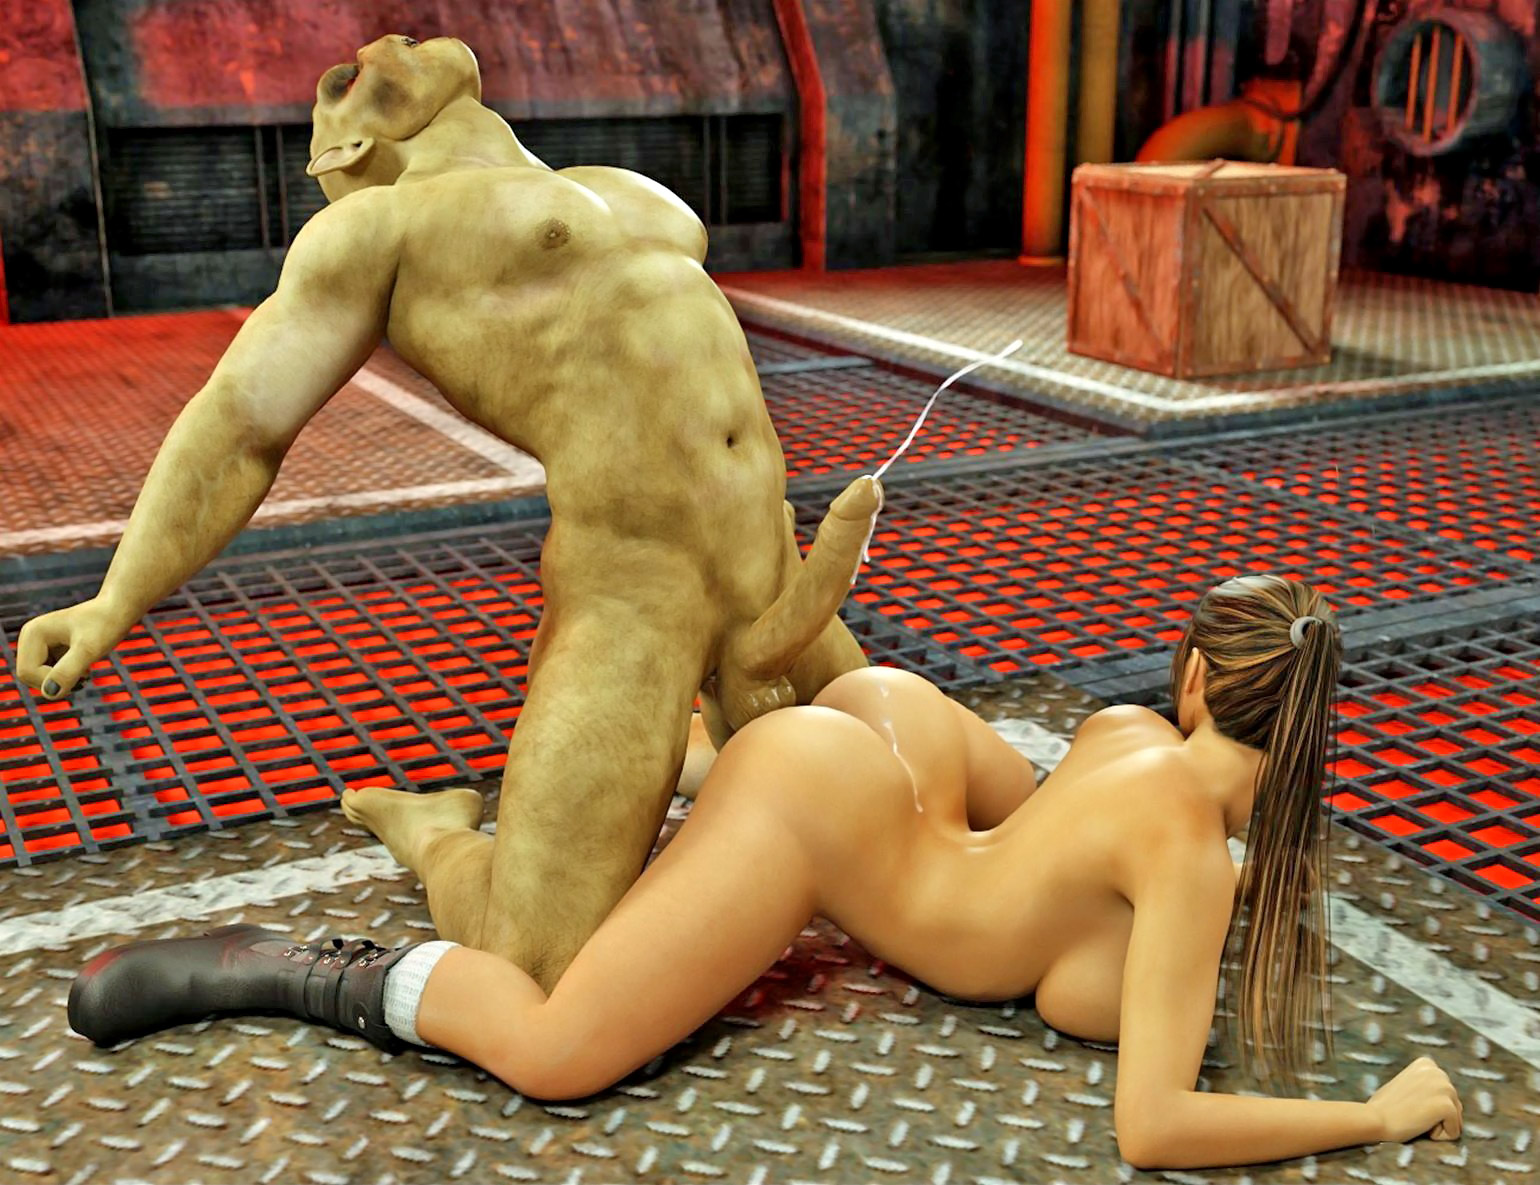 Erotic 3d art lara videos hentia video